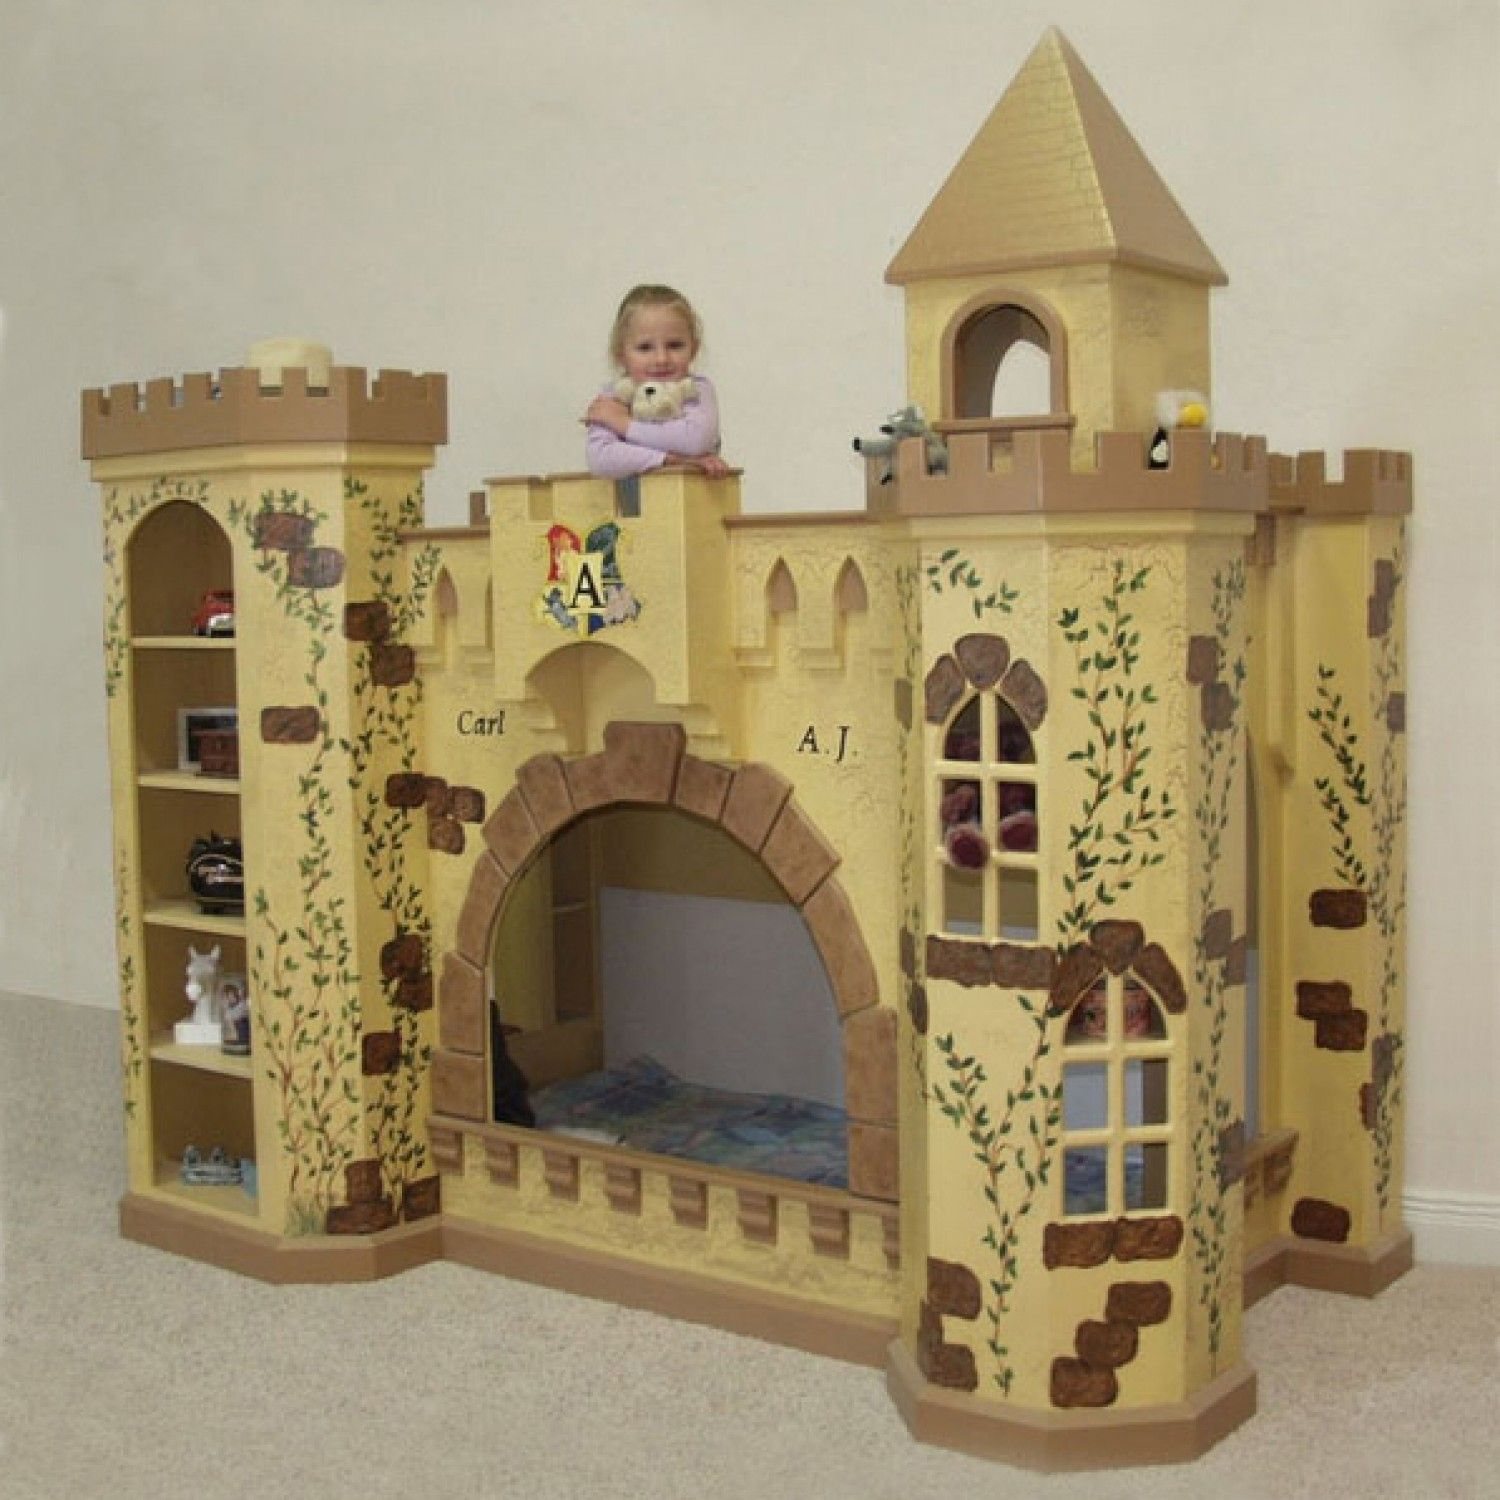 Kids loft bed with slide plans - Princess Bunk Bed Playhouse Castle Bunk Bed Loft Hand Painted